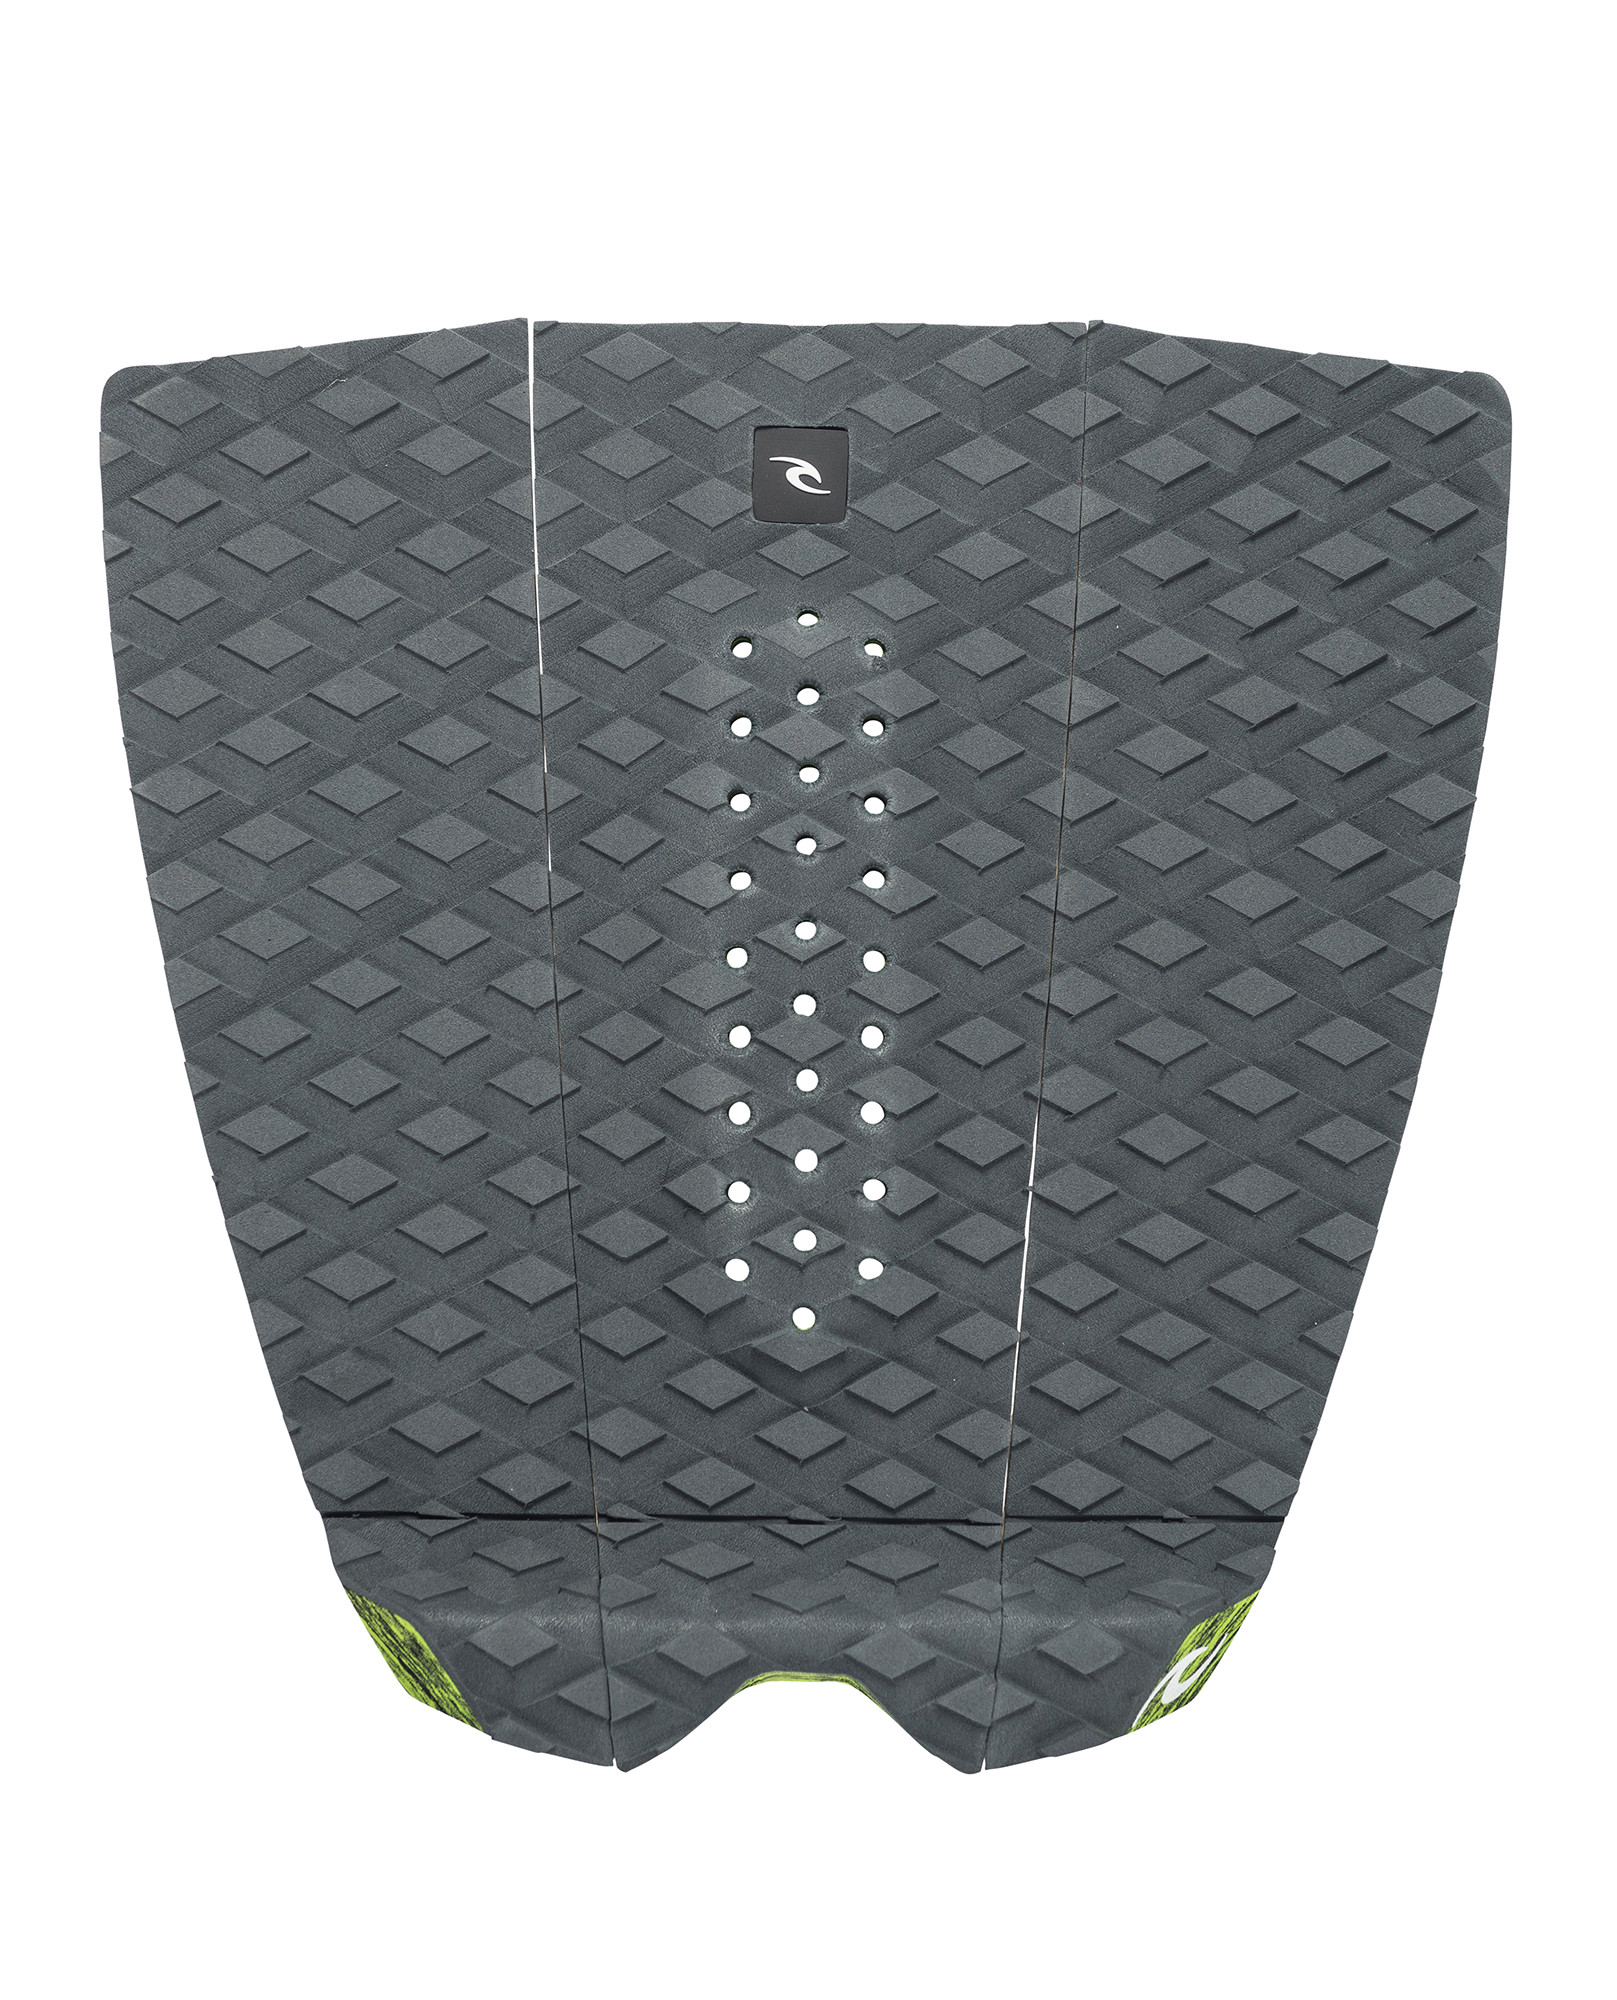 RIP CURL 3 PIECE Xl TRACTION PAD